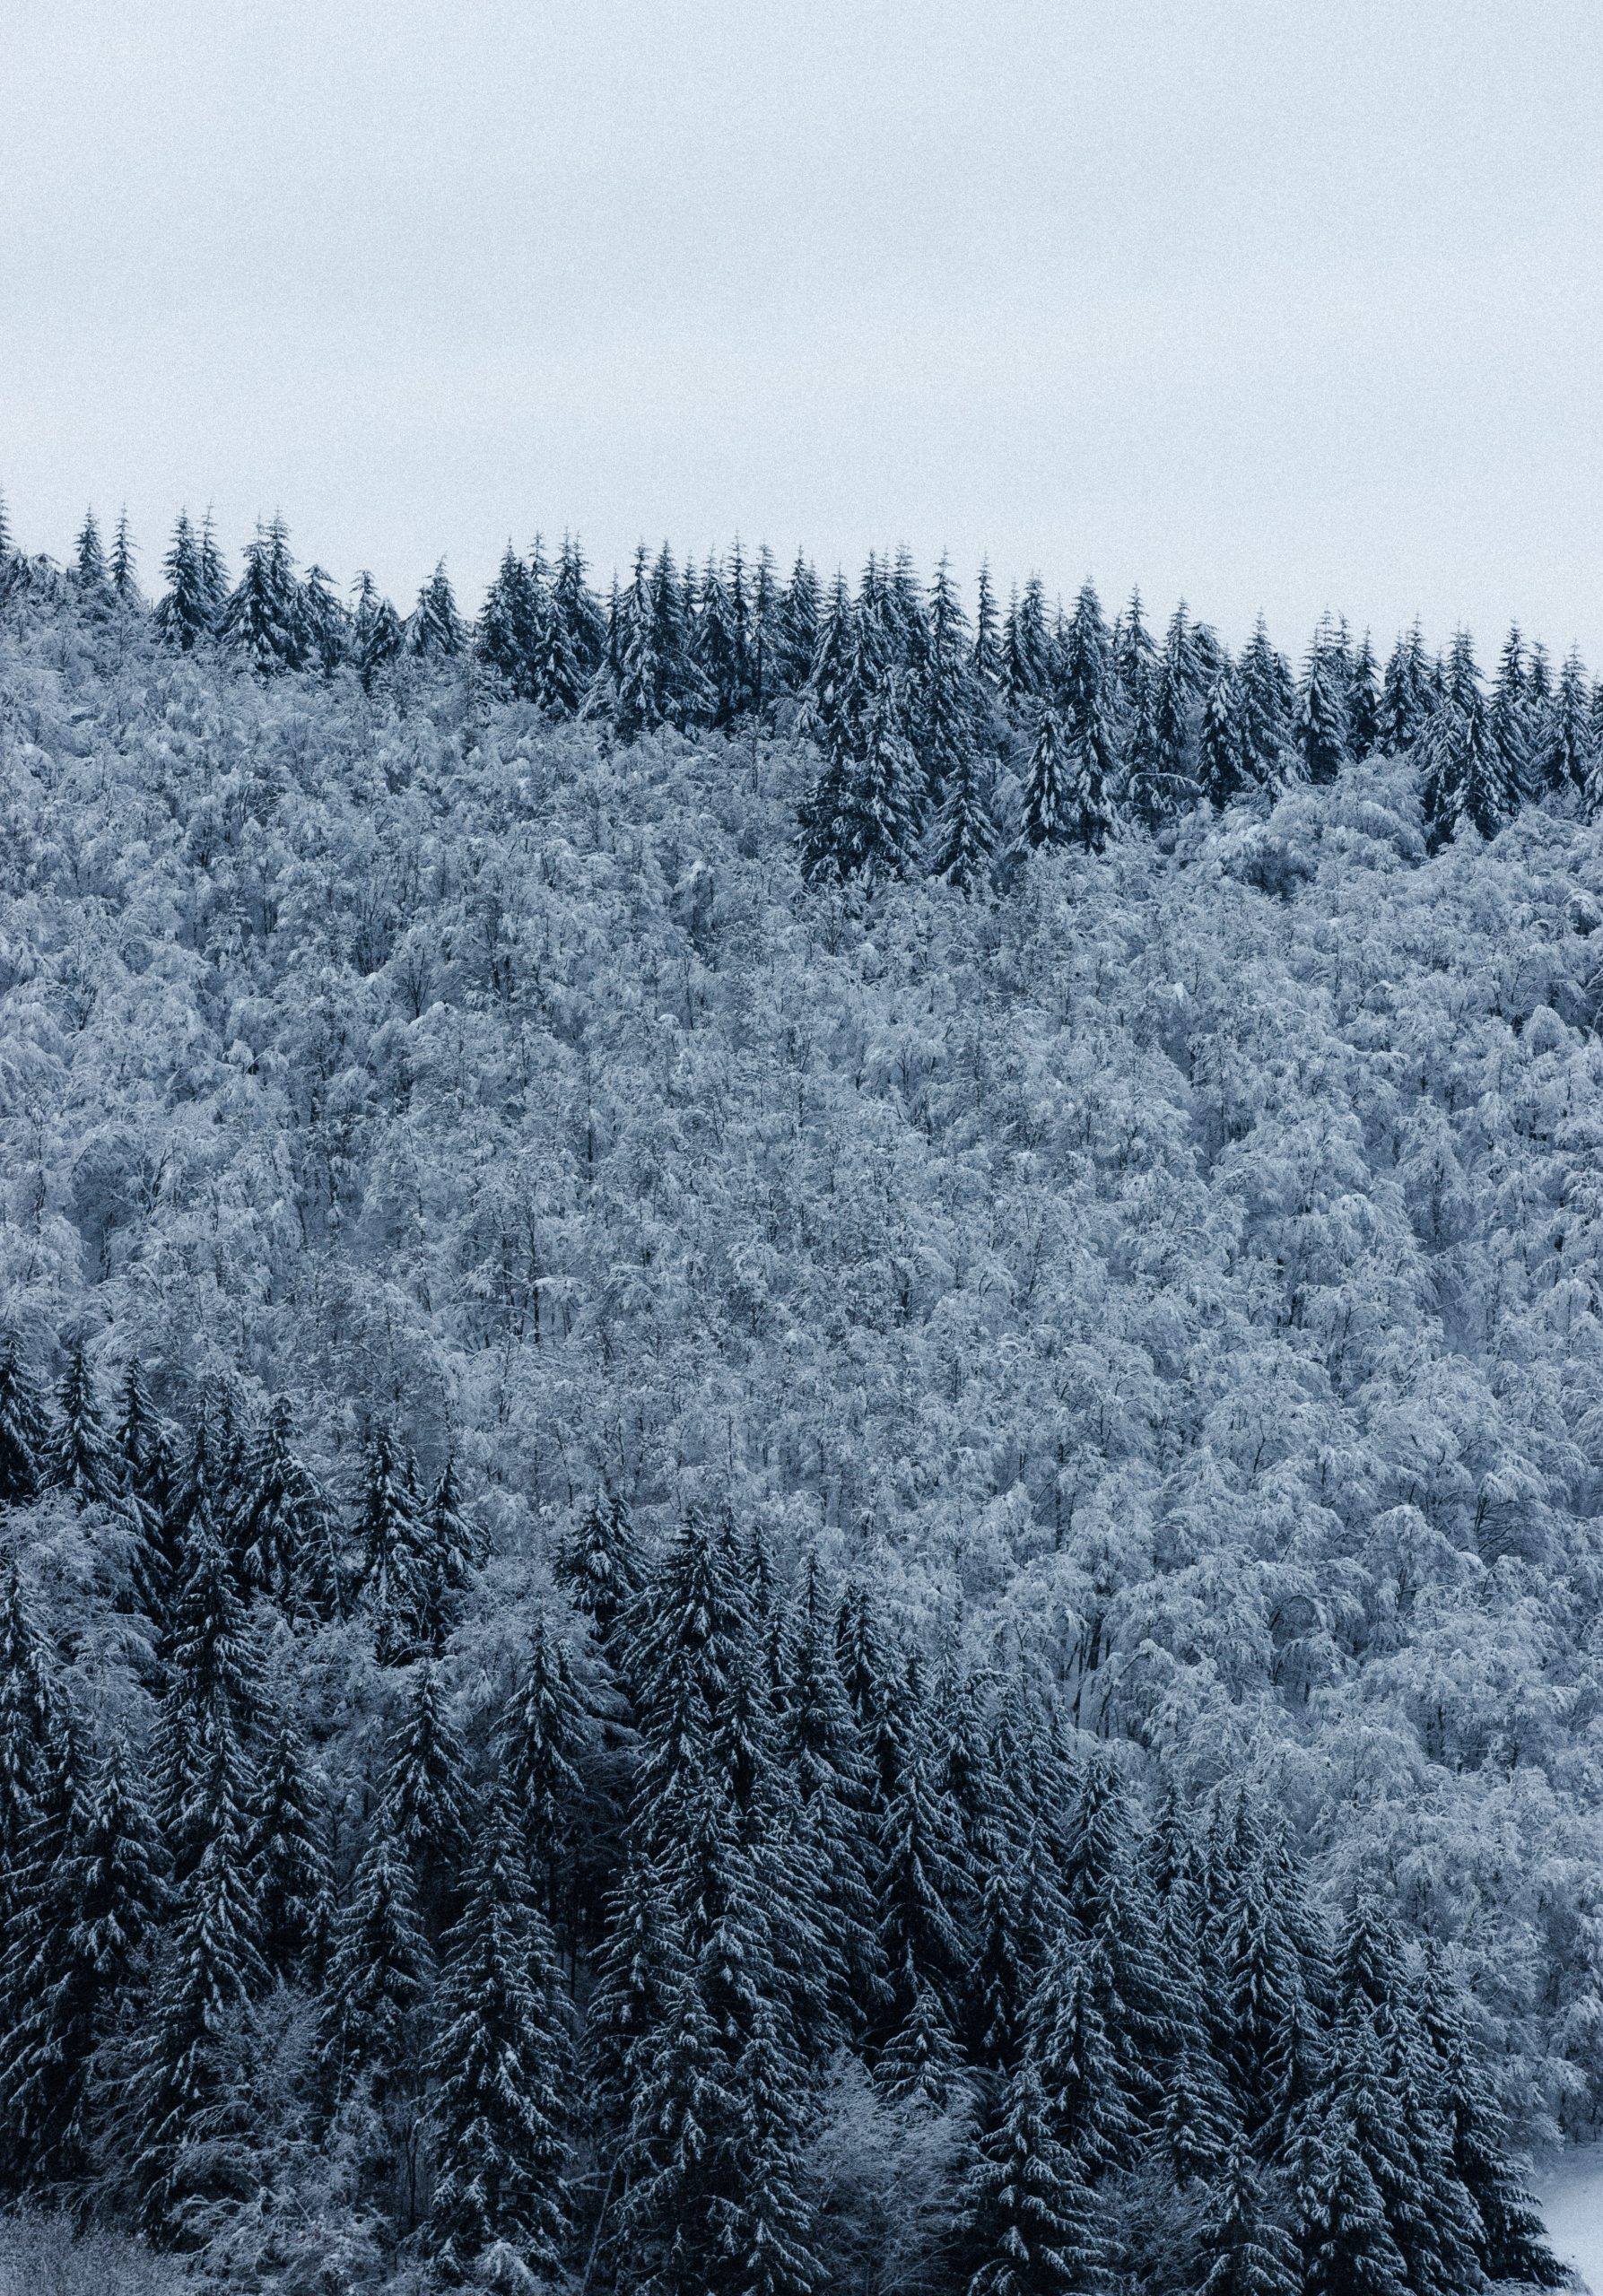 Snow over trees